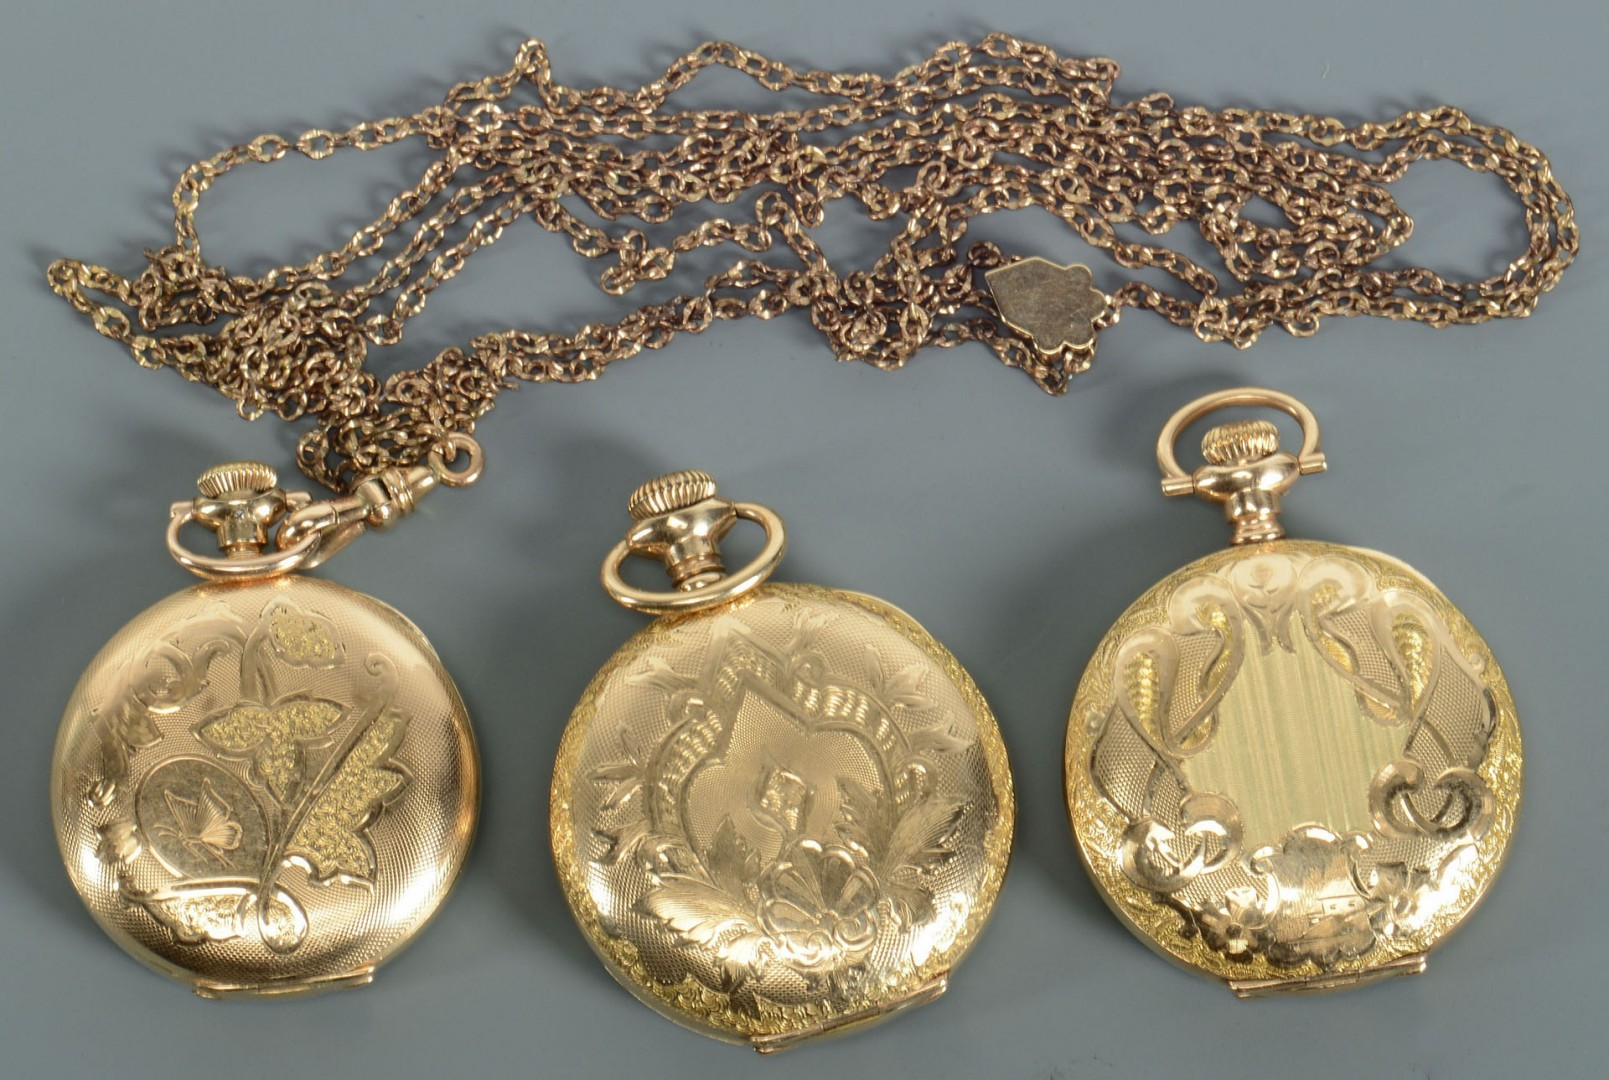 Group of 7 pocket watches, inc 14K Omega